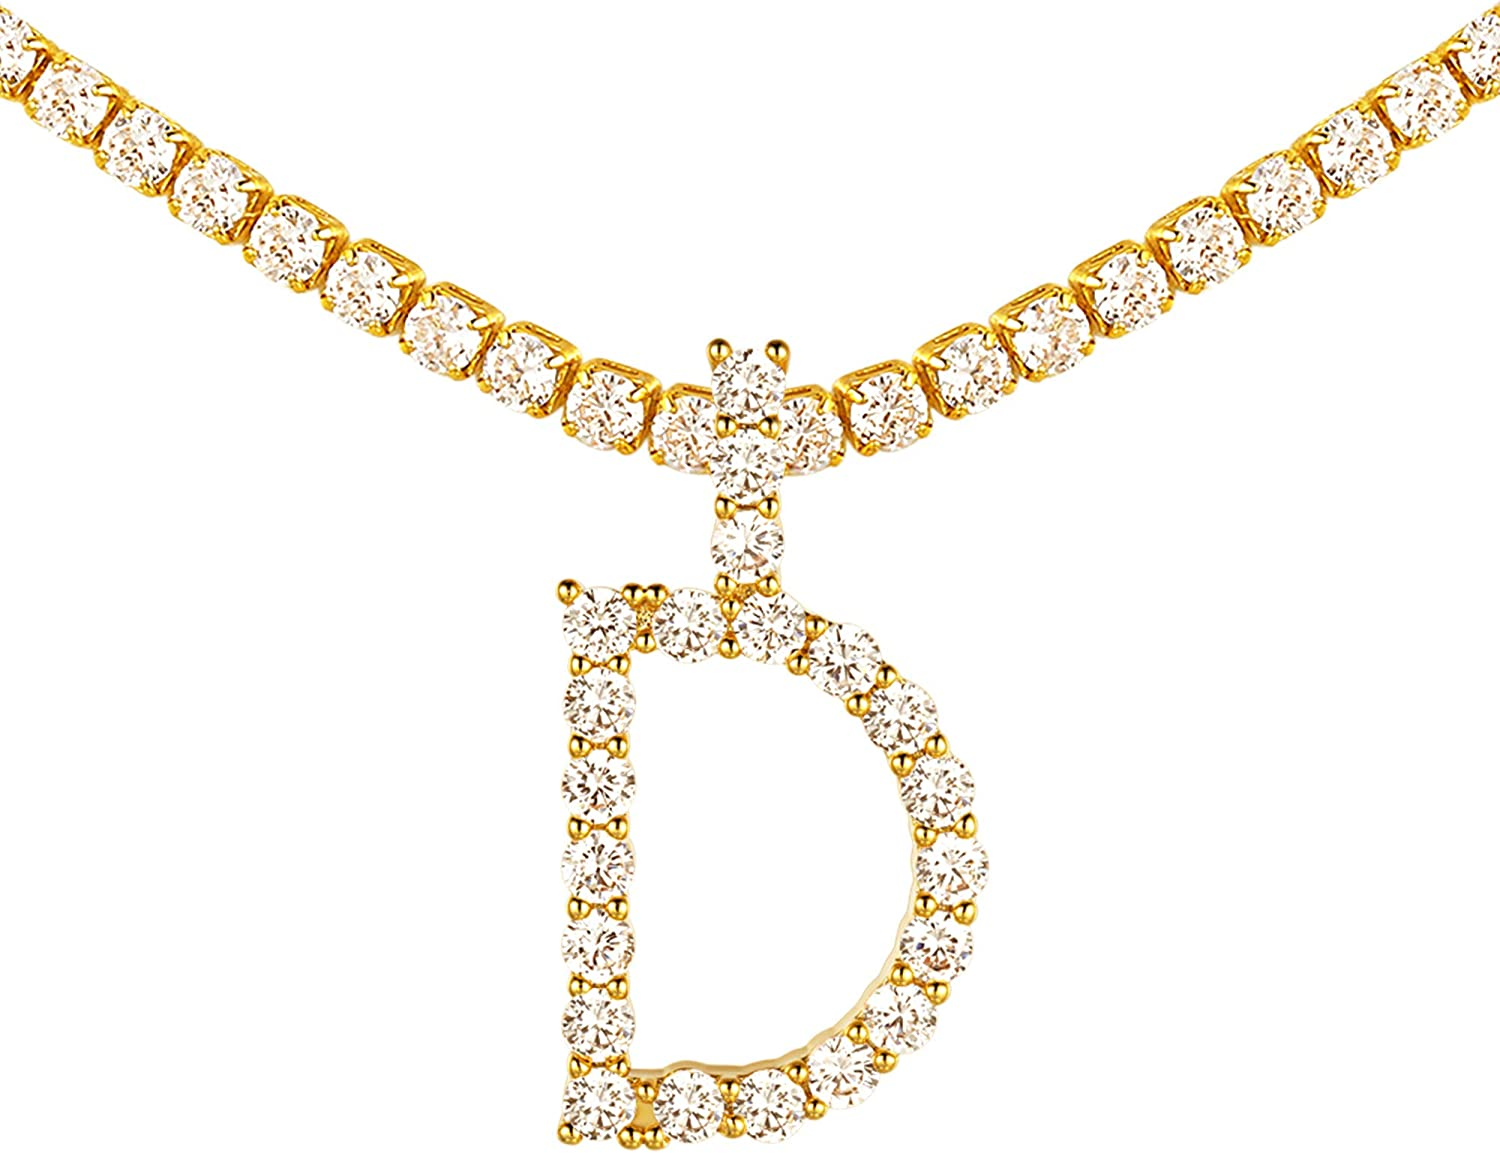 Ice Out Simulated Diamond Initial Necklace, 18K Gold Plated Cubic Zirconia Tennis Choker Chain 16